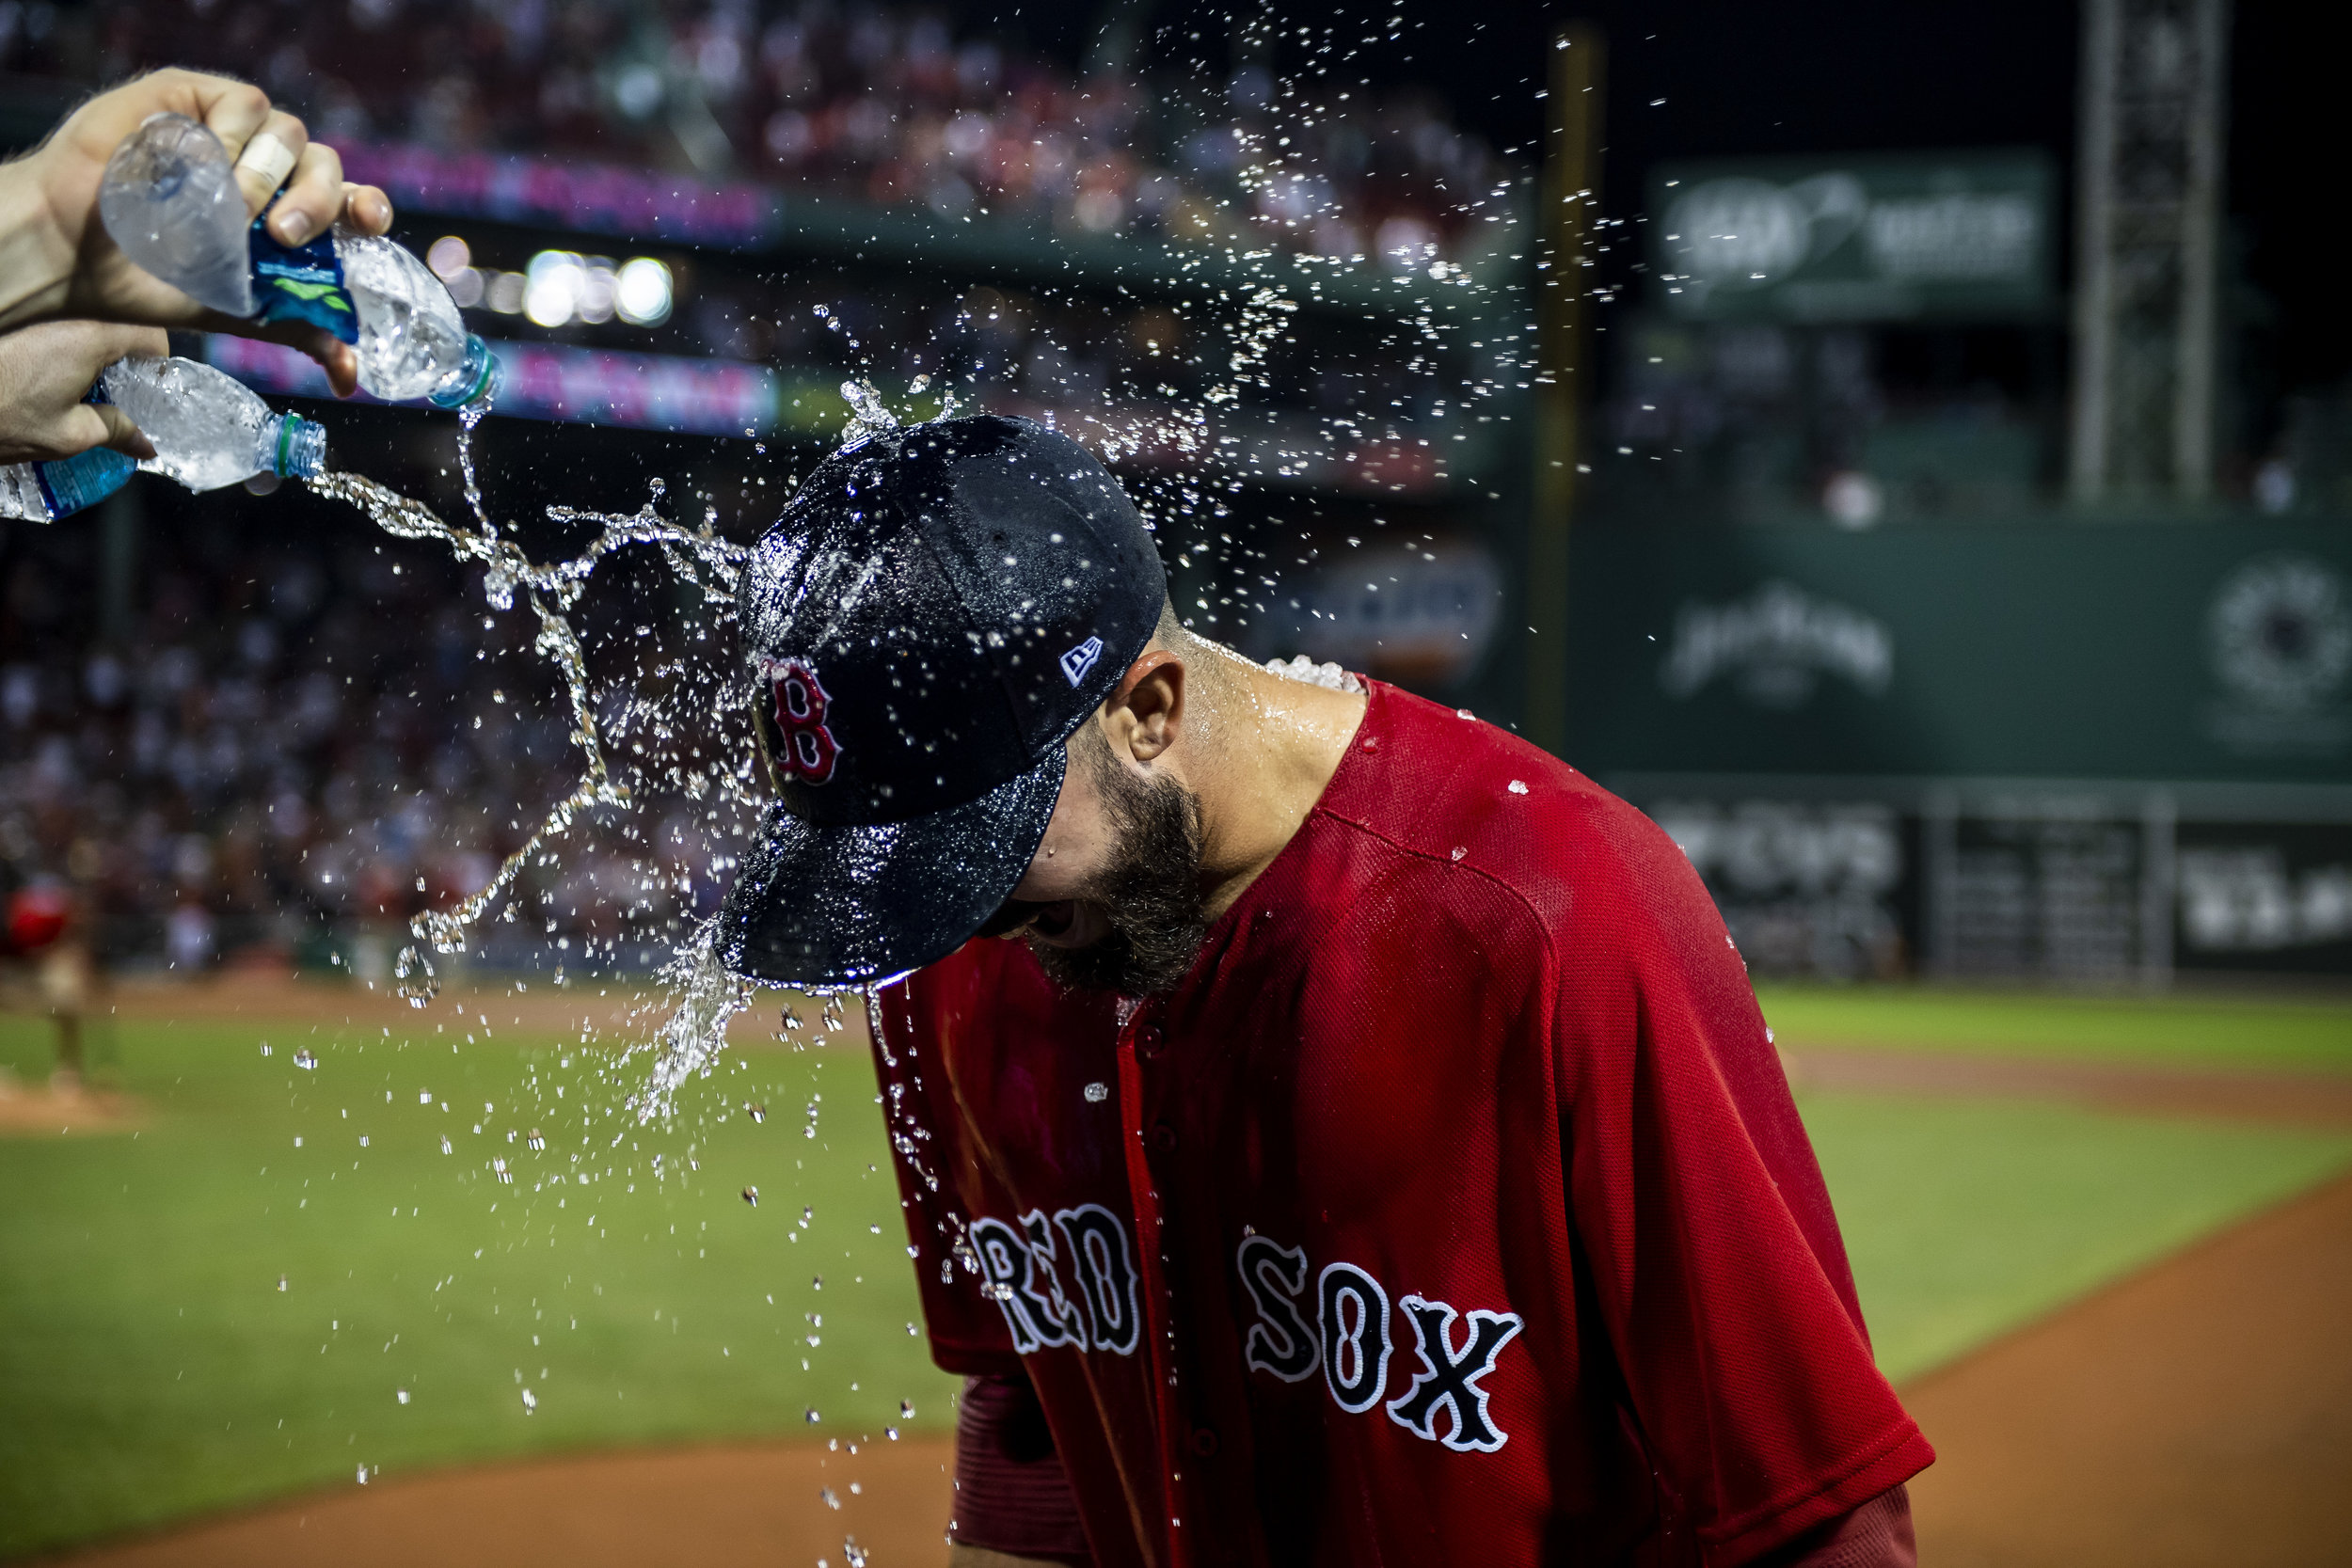 August 3, 2018, Boston, MA: Boston Red Sox outfielder Brock Holt dumps two water bottles on Boston Red Sox pitcher Rick Porcello after the Boston Red Sox defeated the New York Yankees at Fenway Park in Boston, Massachusetts on Friday, August 3, 2018. (Photo by Matthew Thomas/Boston Red Sox)